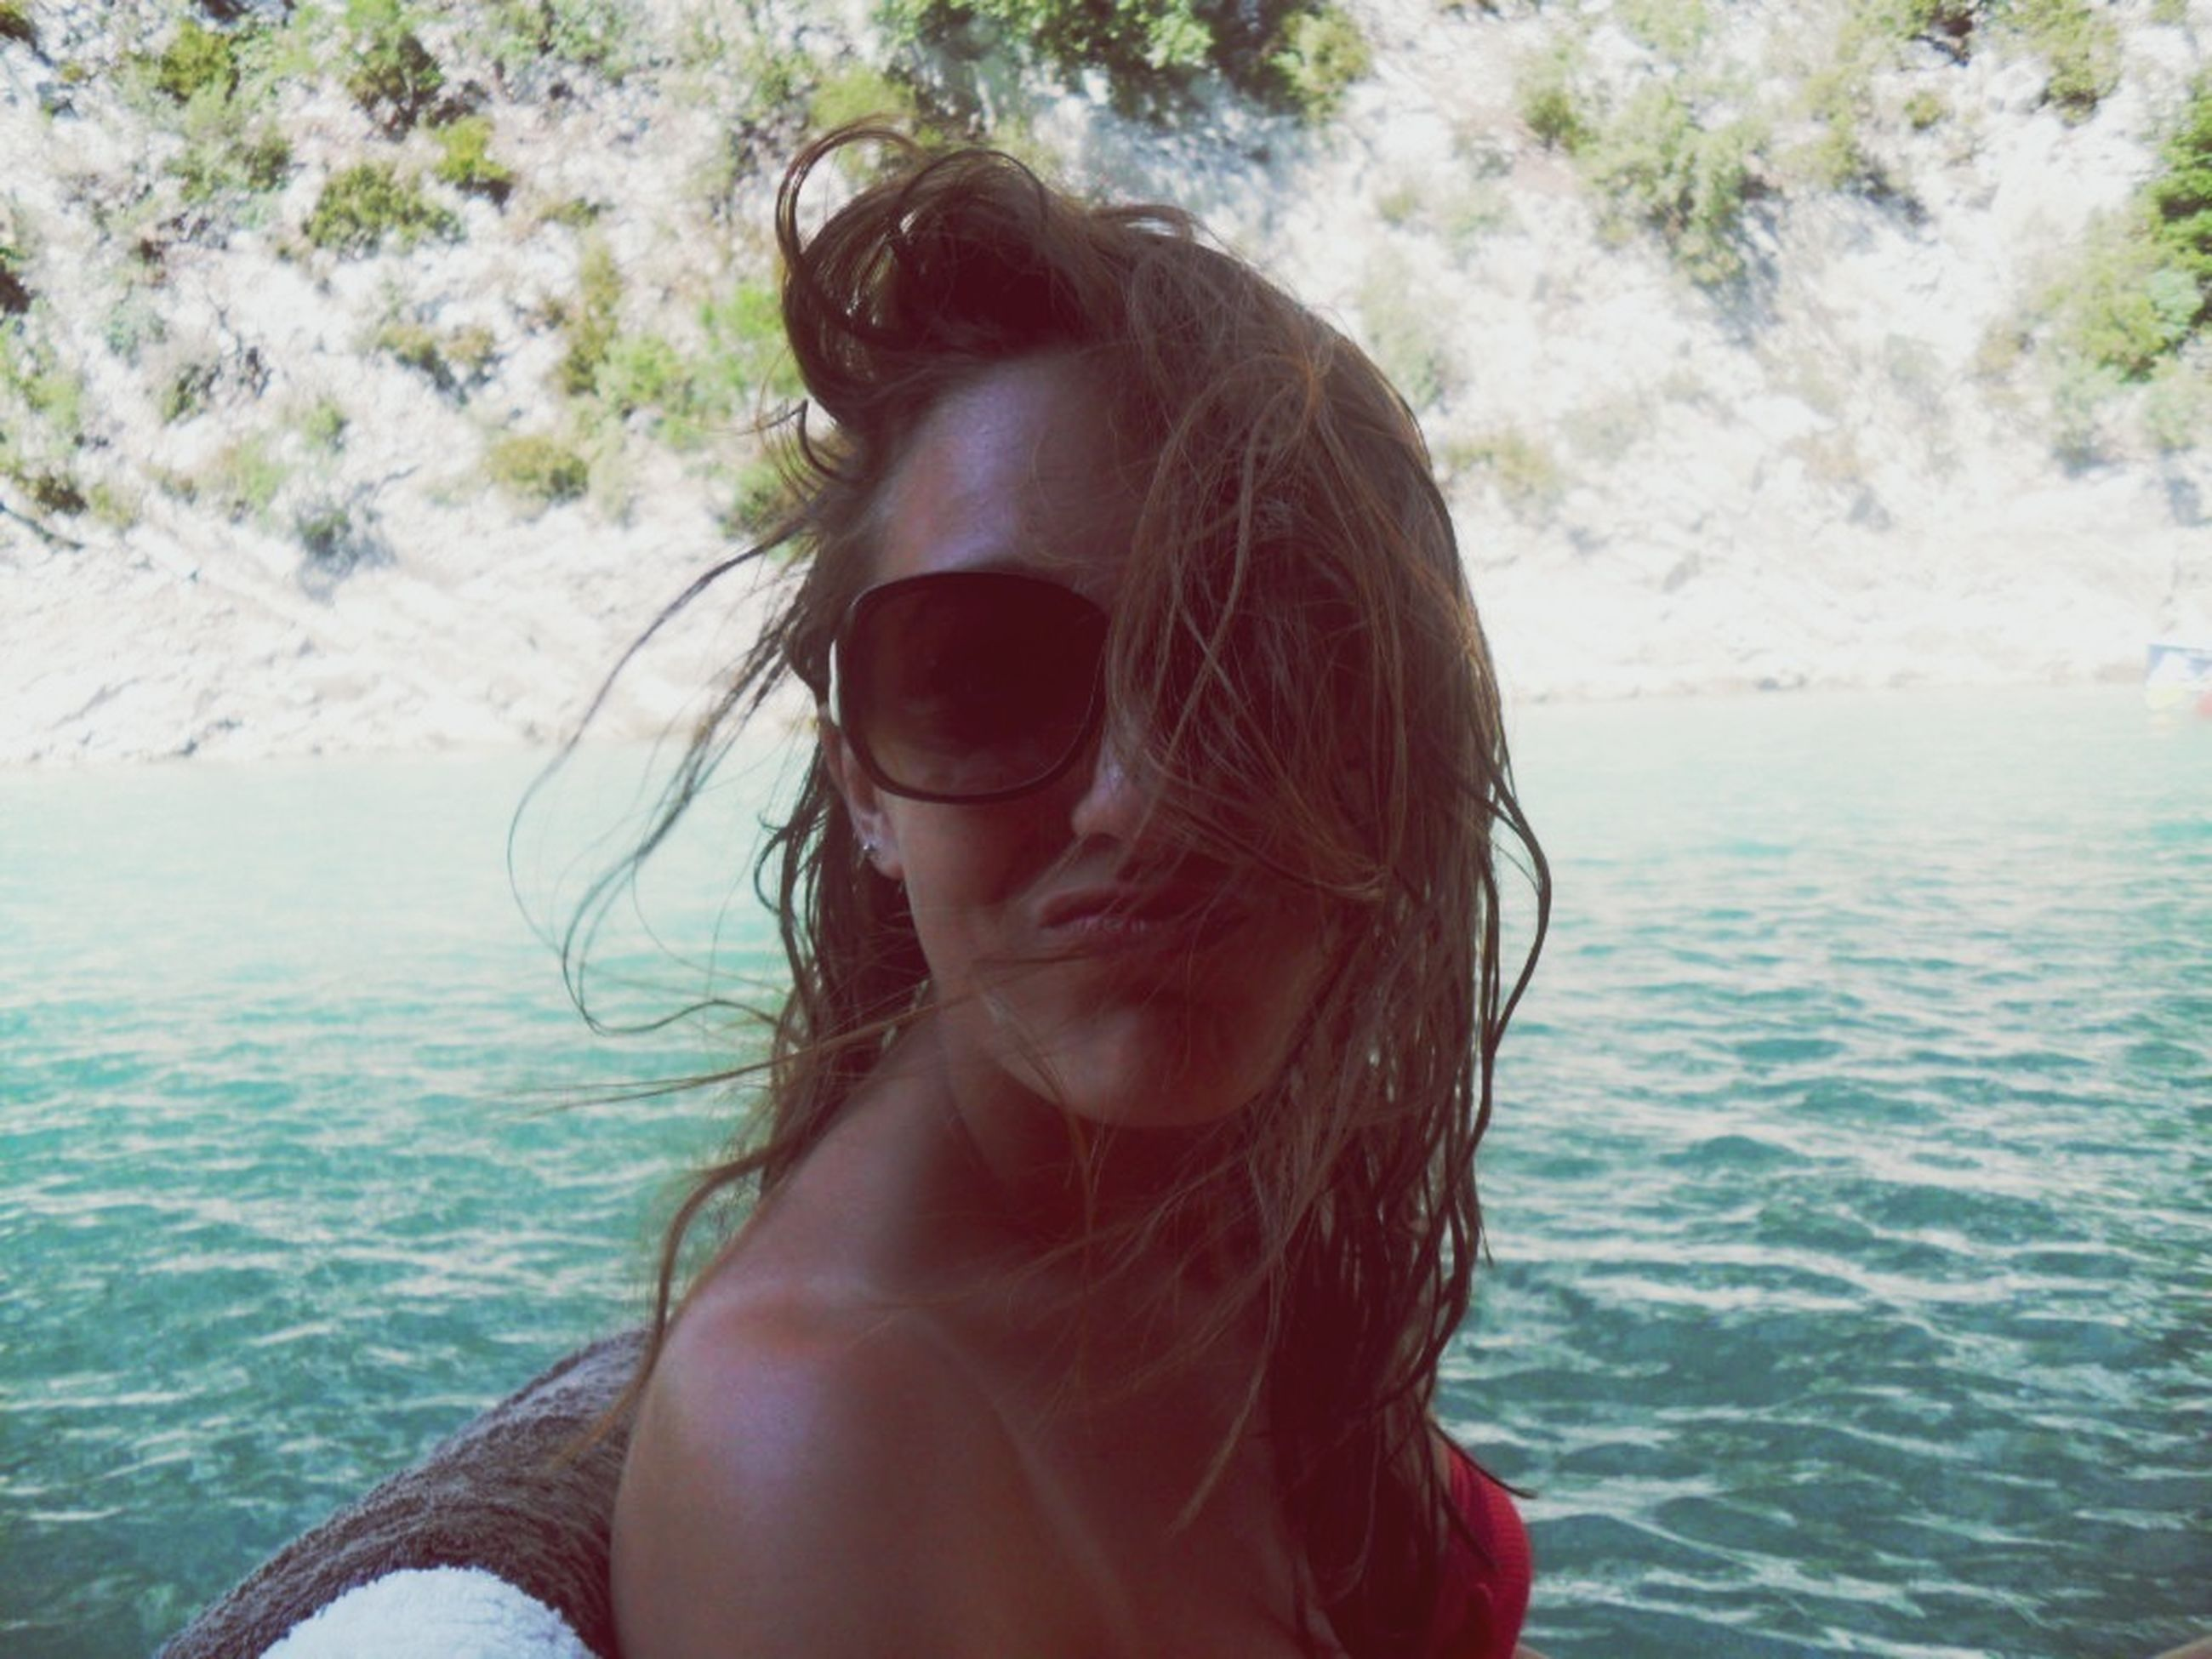 water, young adult, headshot, lifestyles, leisure activity, person, young women, long hair, sunglasses, sea, head and shoulders, vacations, portrait, looking at camera, blond hair, brown hair, day